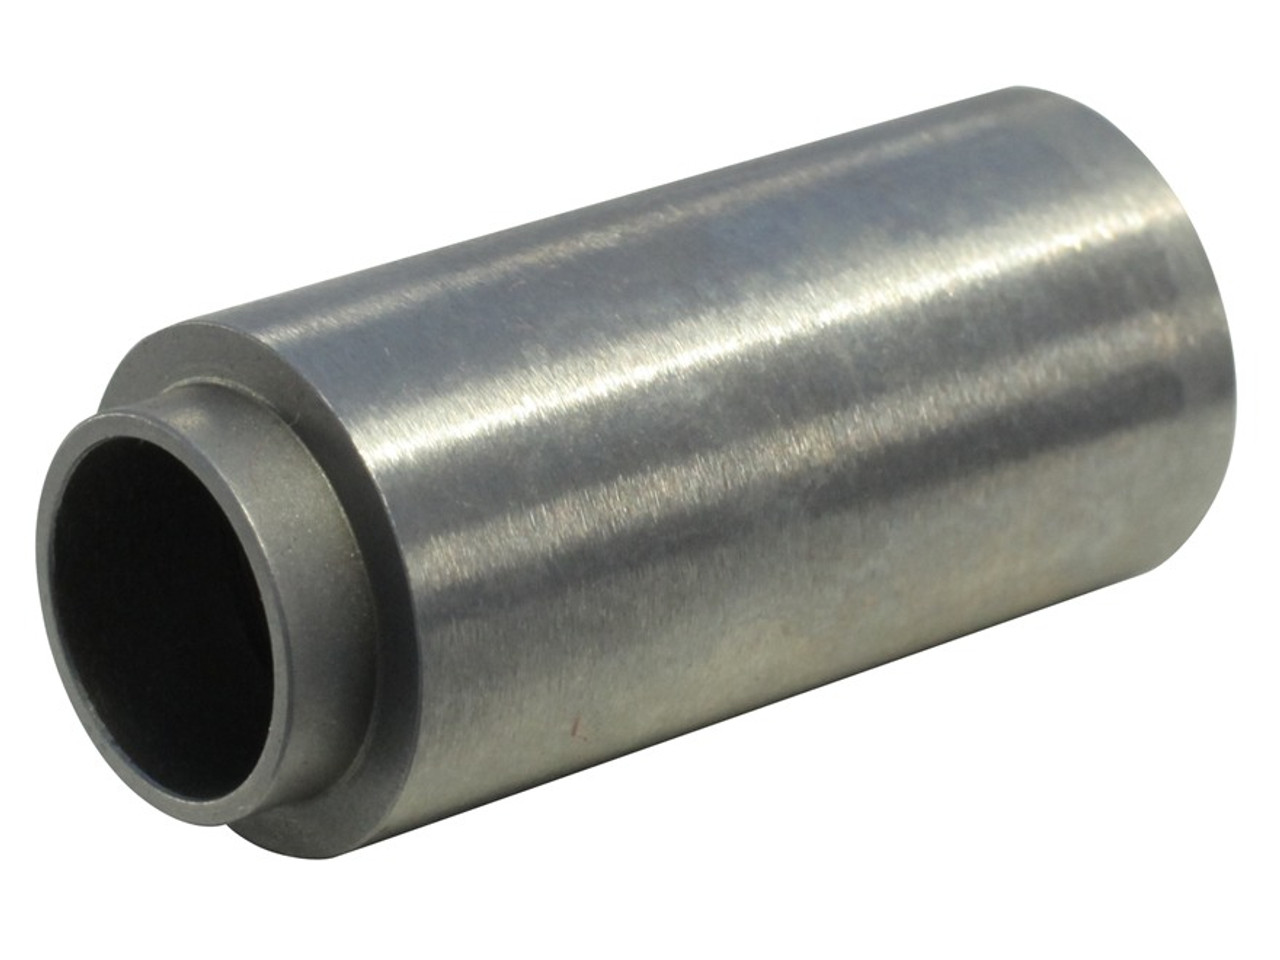 """Kimber Recoil Spring Plug Stainless for 5"""" 1911 Full Size 1000301A"""